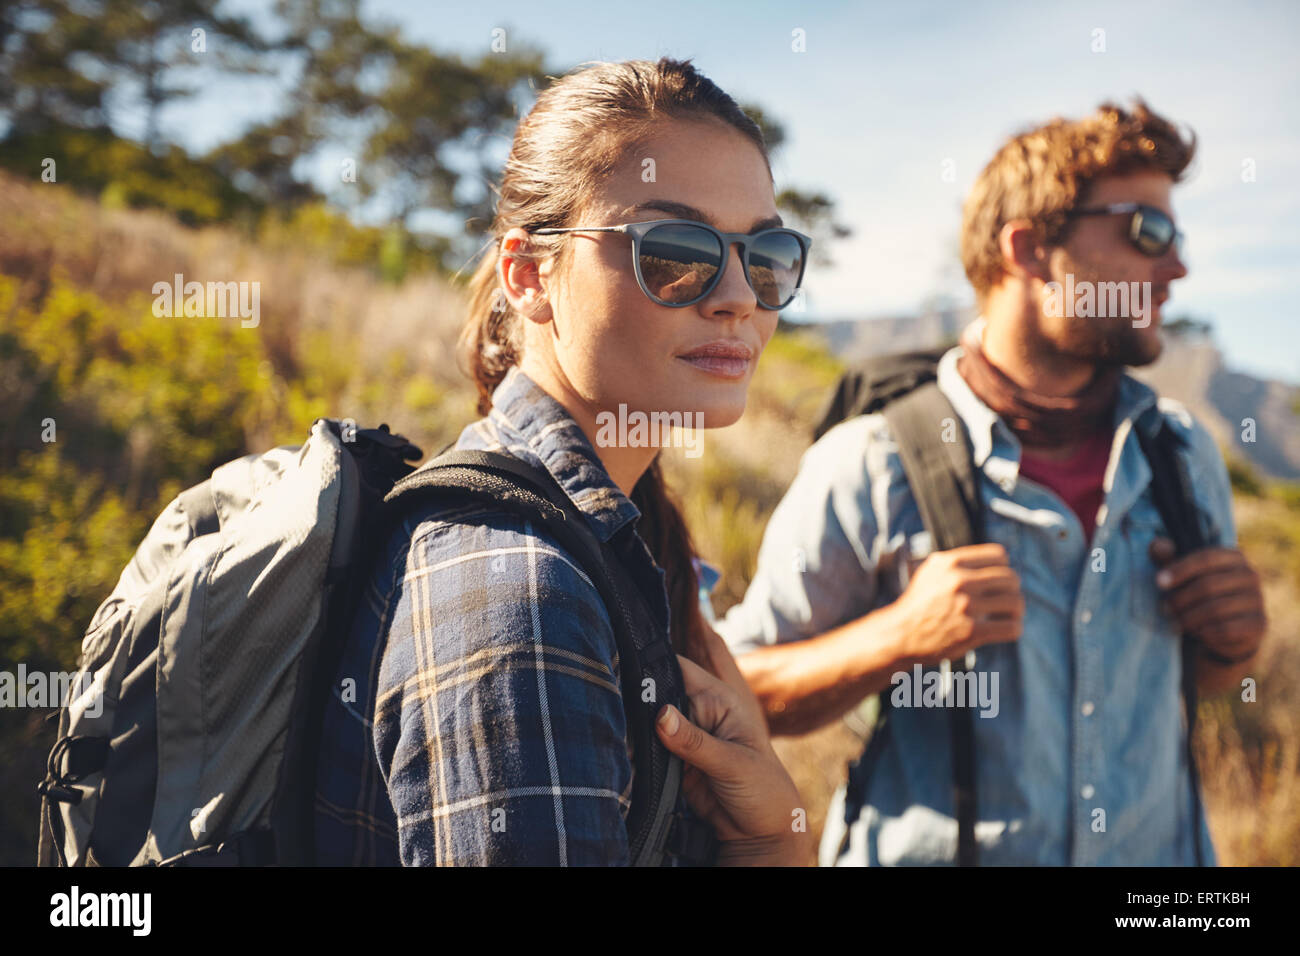 Pretty young woman on a hiking trip with man in the background. Caucasian couple on hike in countryside - Stock Image